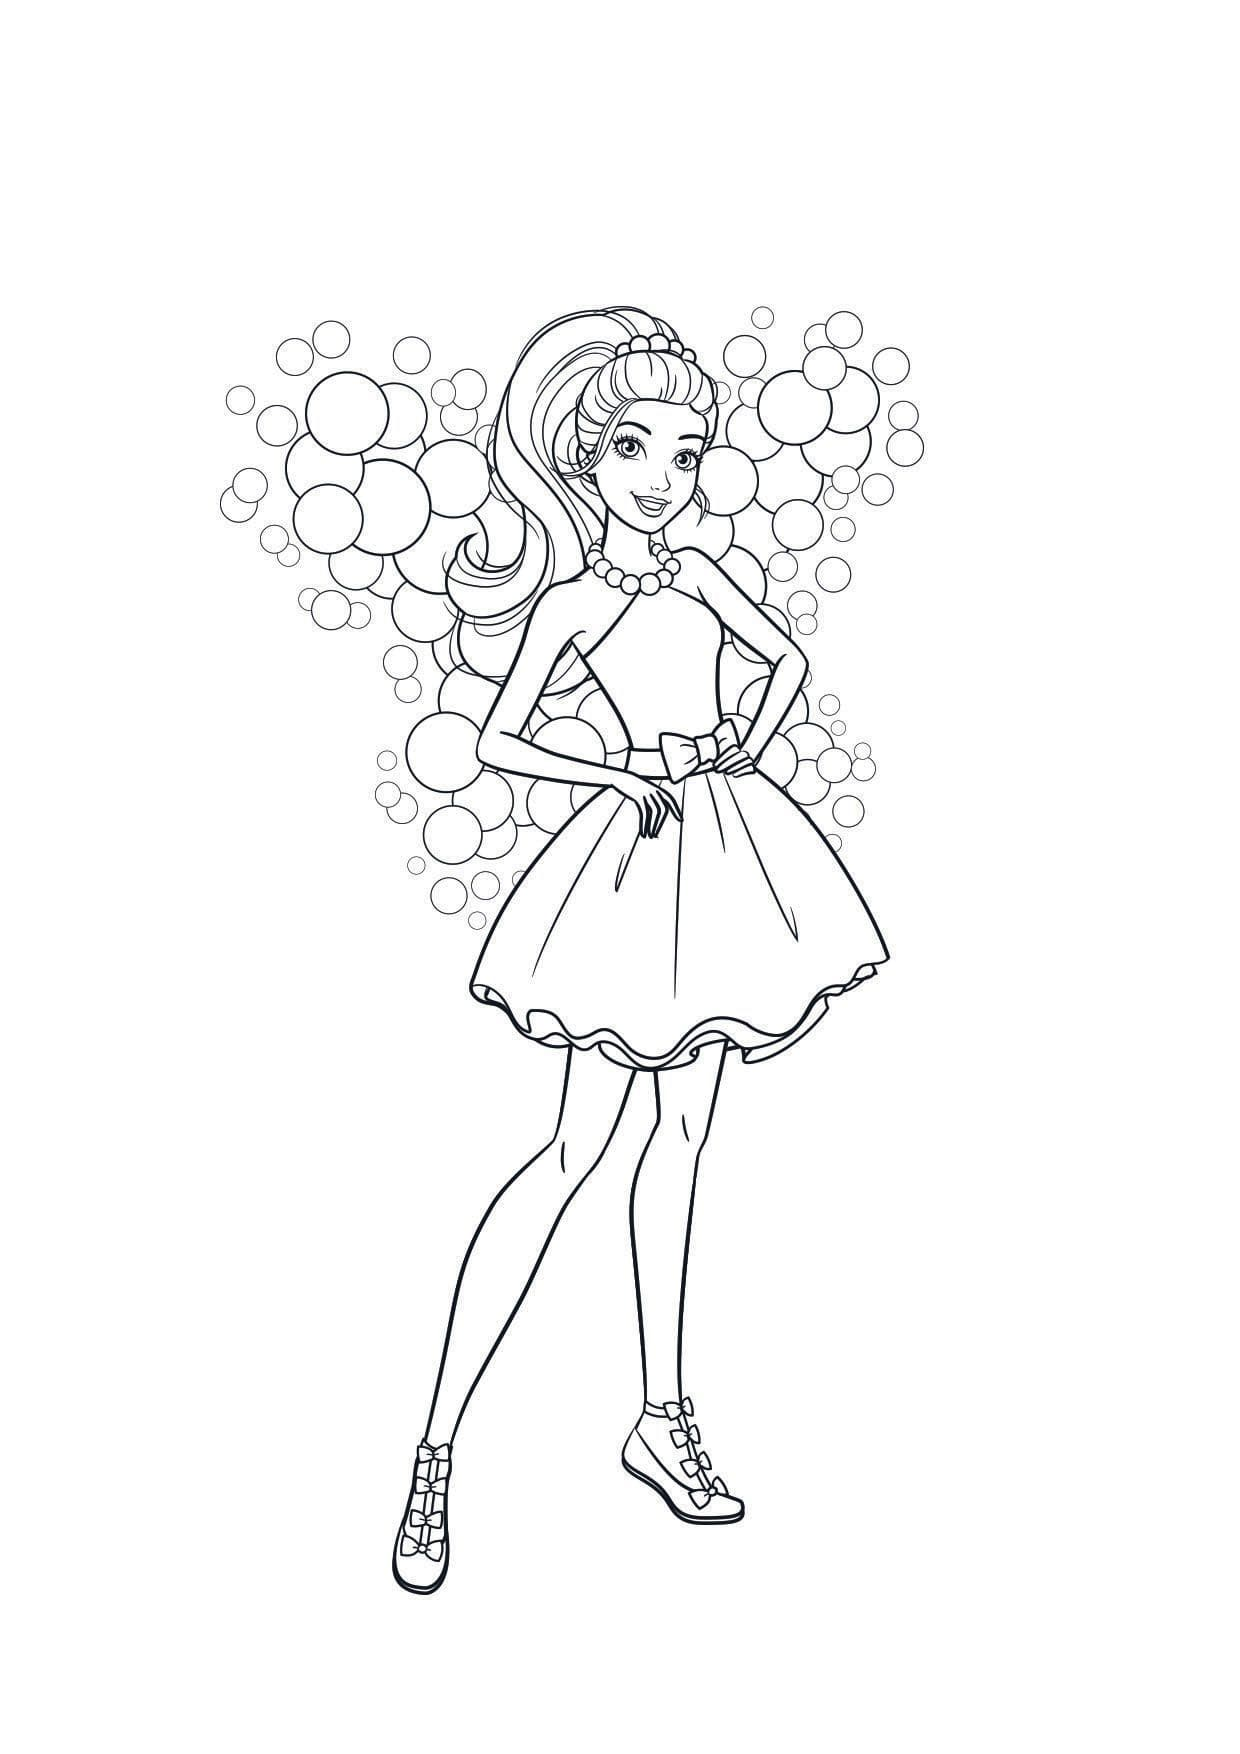 Top 20 Printable Barie Coloring Pages